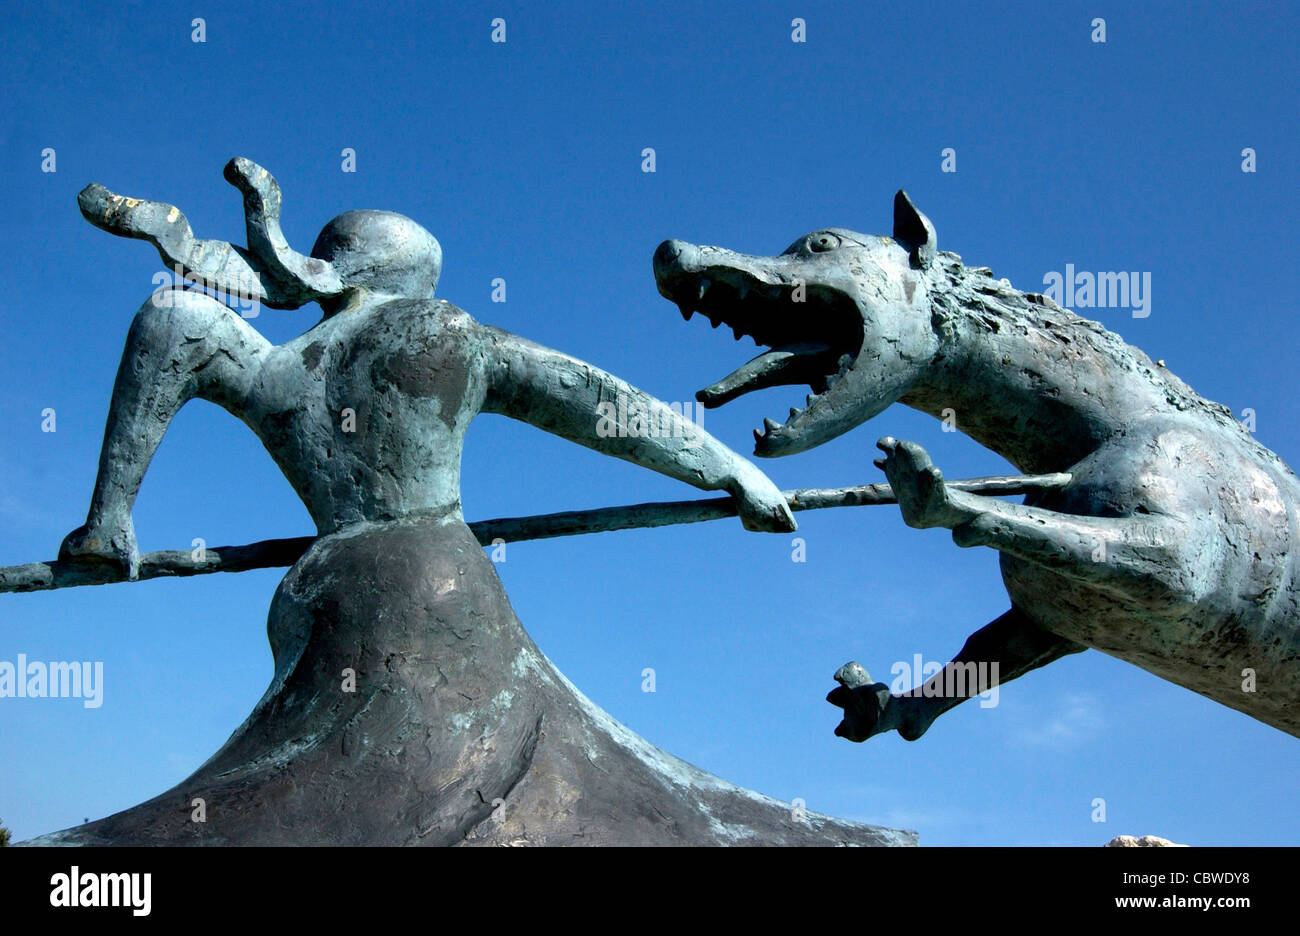 Sculpture of Beast of Gevaudan werewolf or wolf at Auvers, Haute Loire, Auvergne, France, Europe - Stock Image